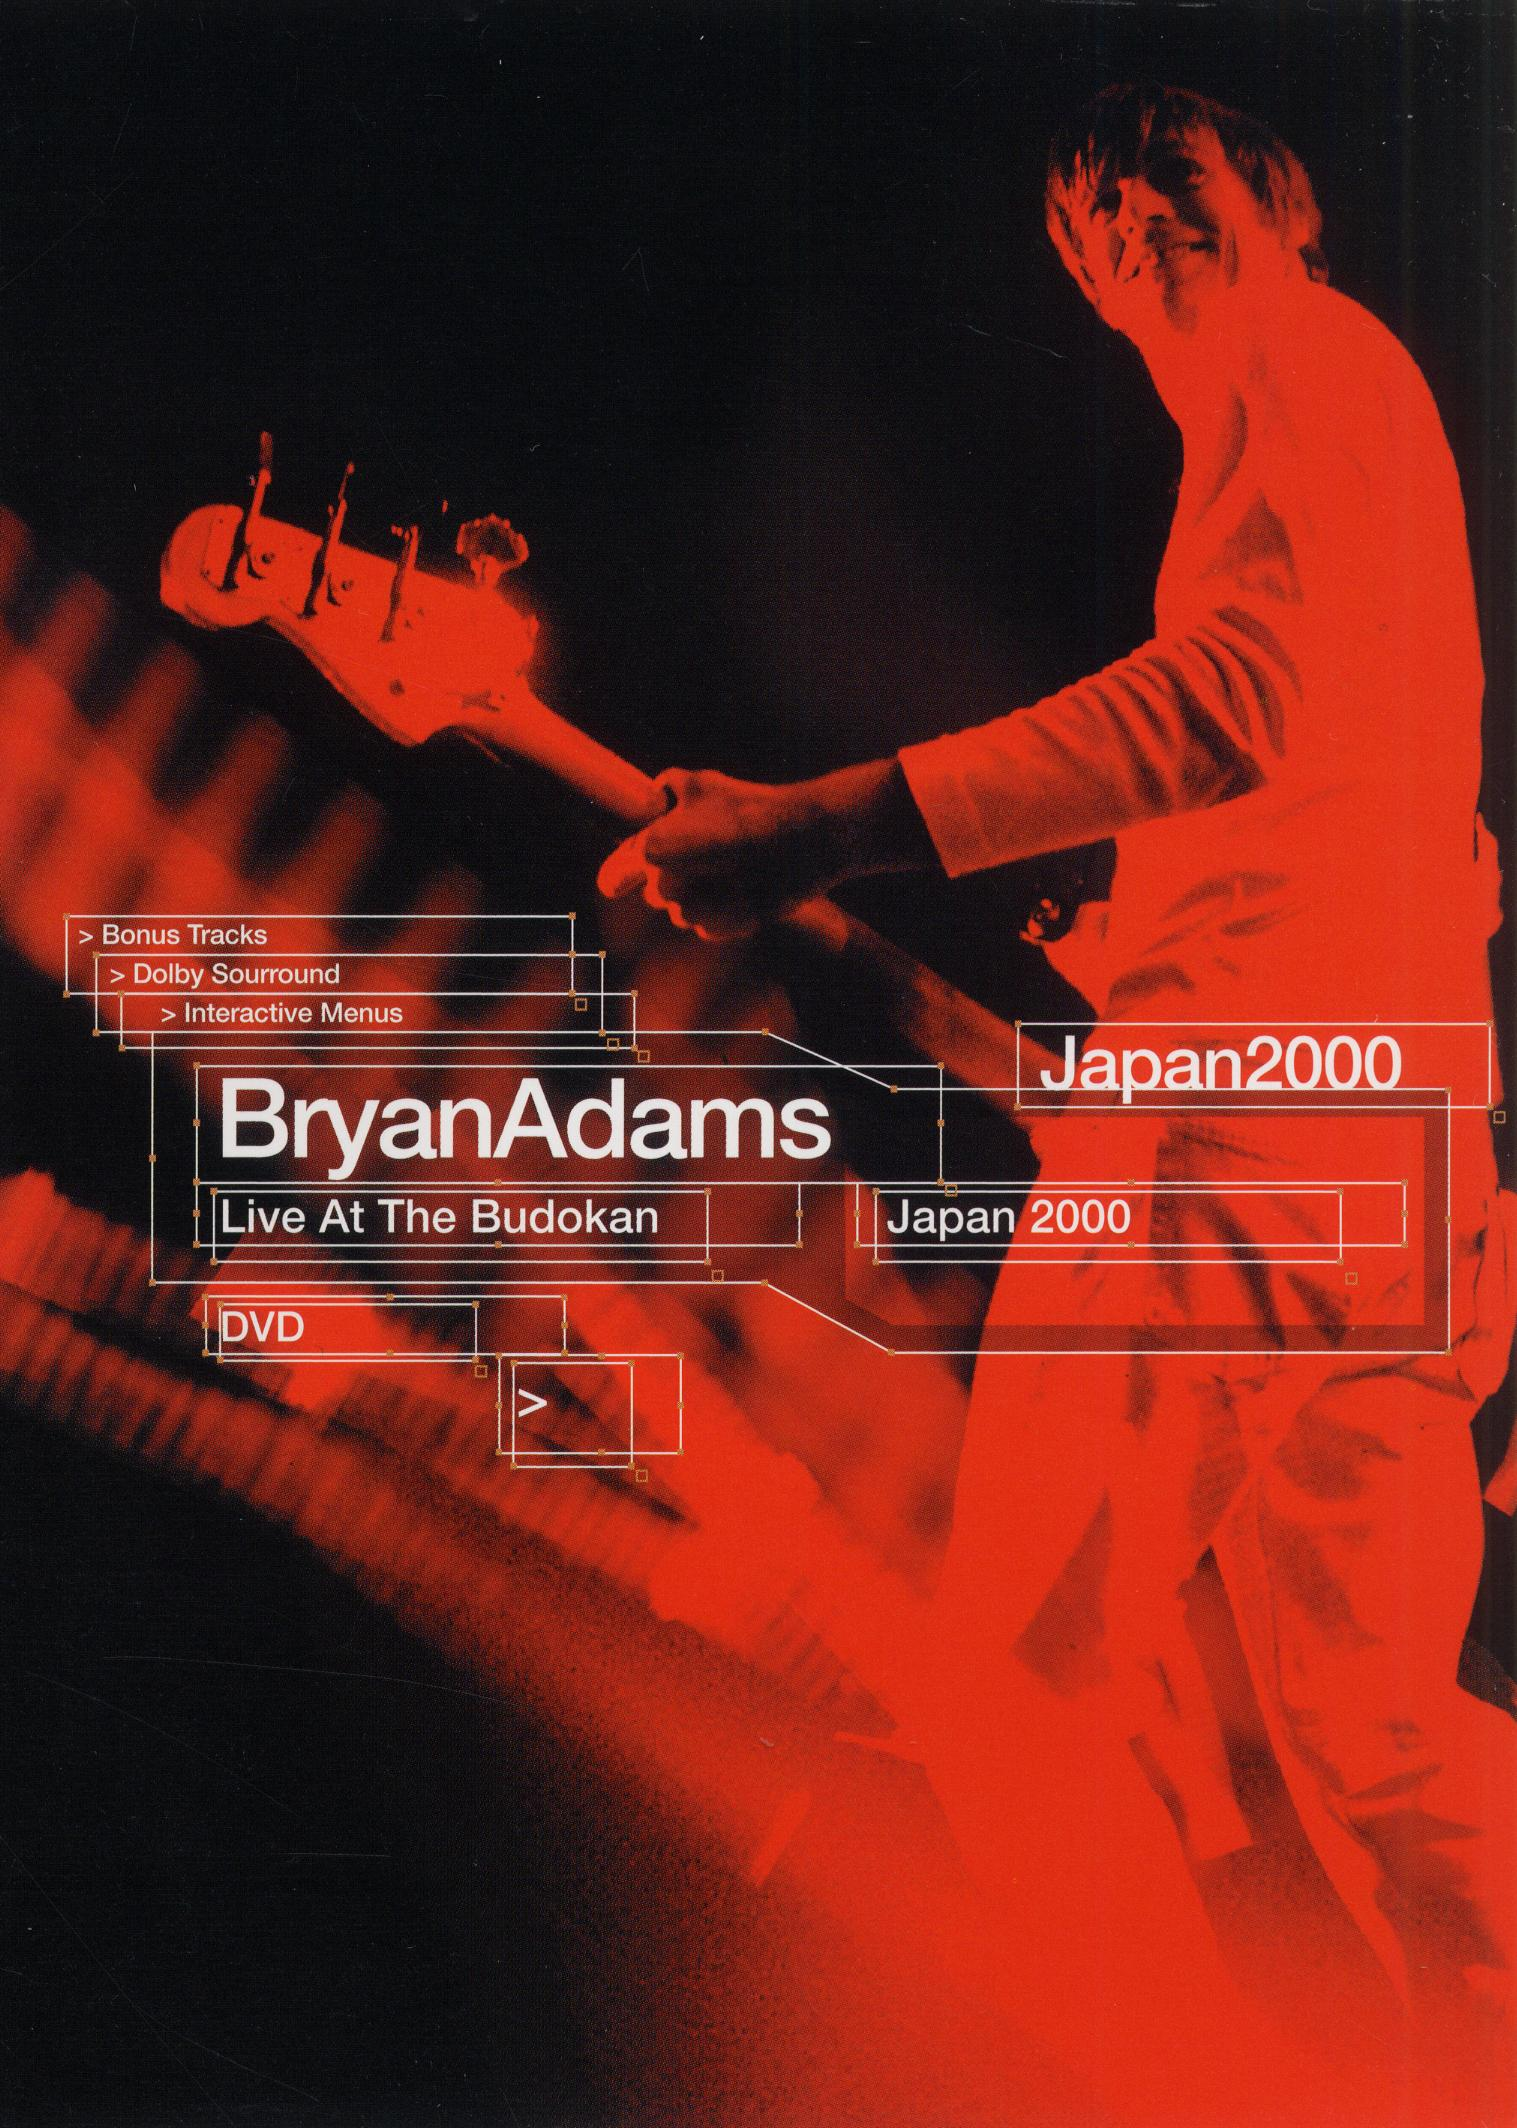 Bryan Adams: Live at the Budokan - Japan 2000